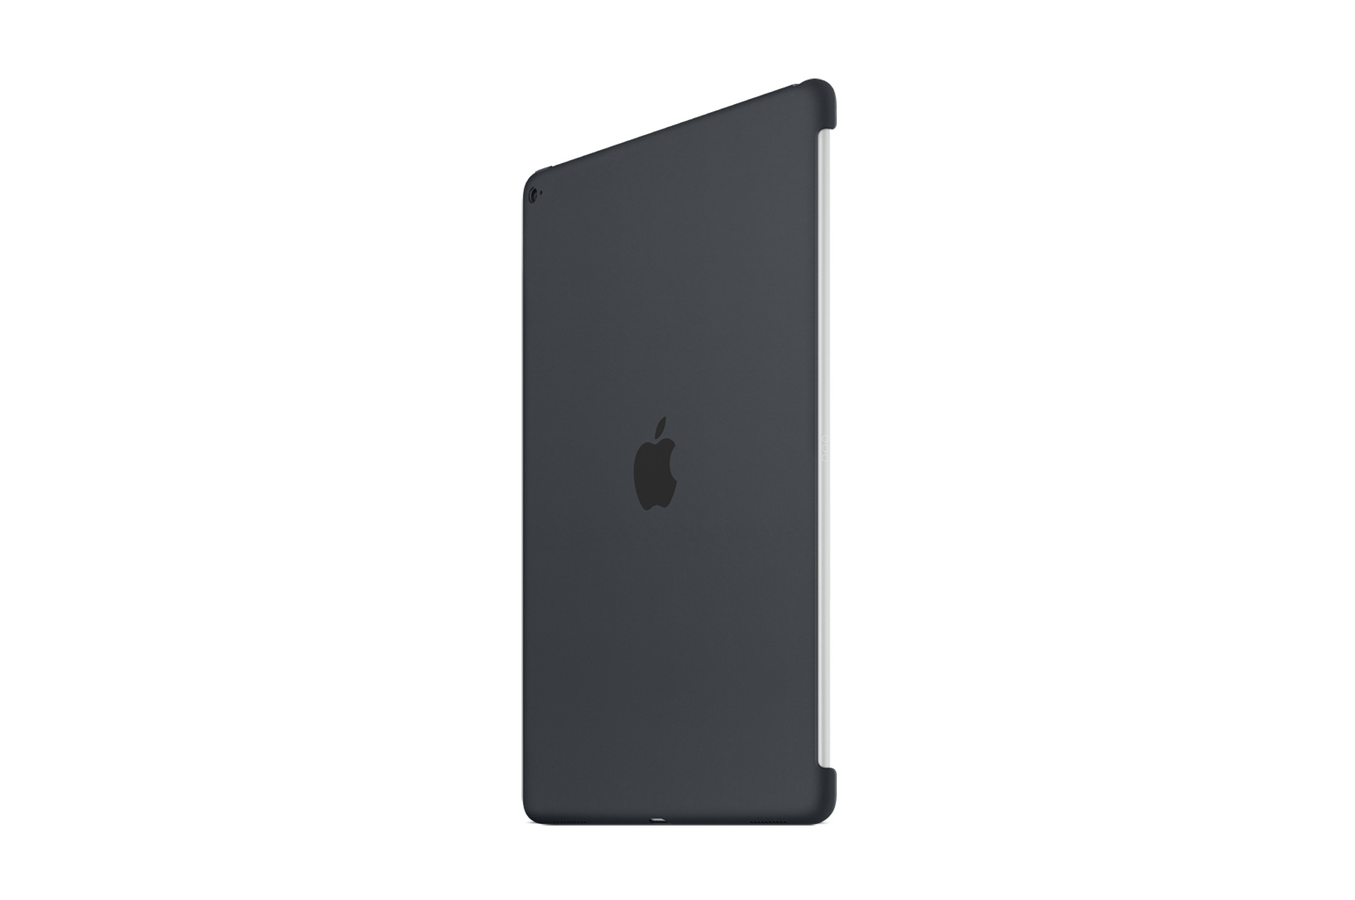 housse et tui pour tablette apple coque en silicone gris anthracite pour ipad pro 12 39 39 4175417. Black Bedroom Furniture Sets. Home Design Ideas